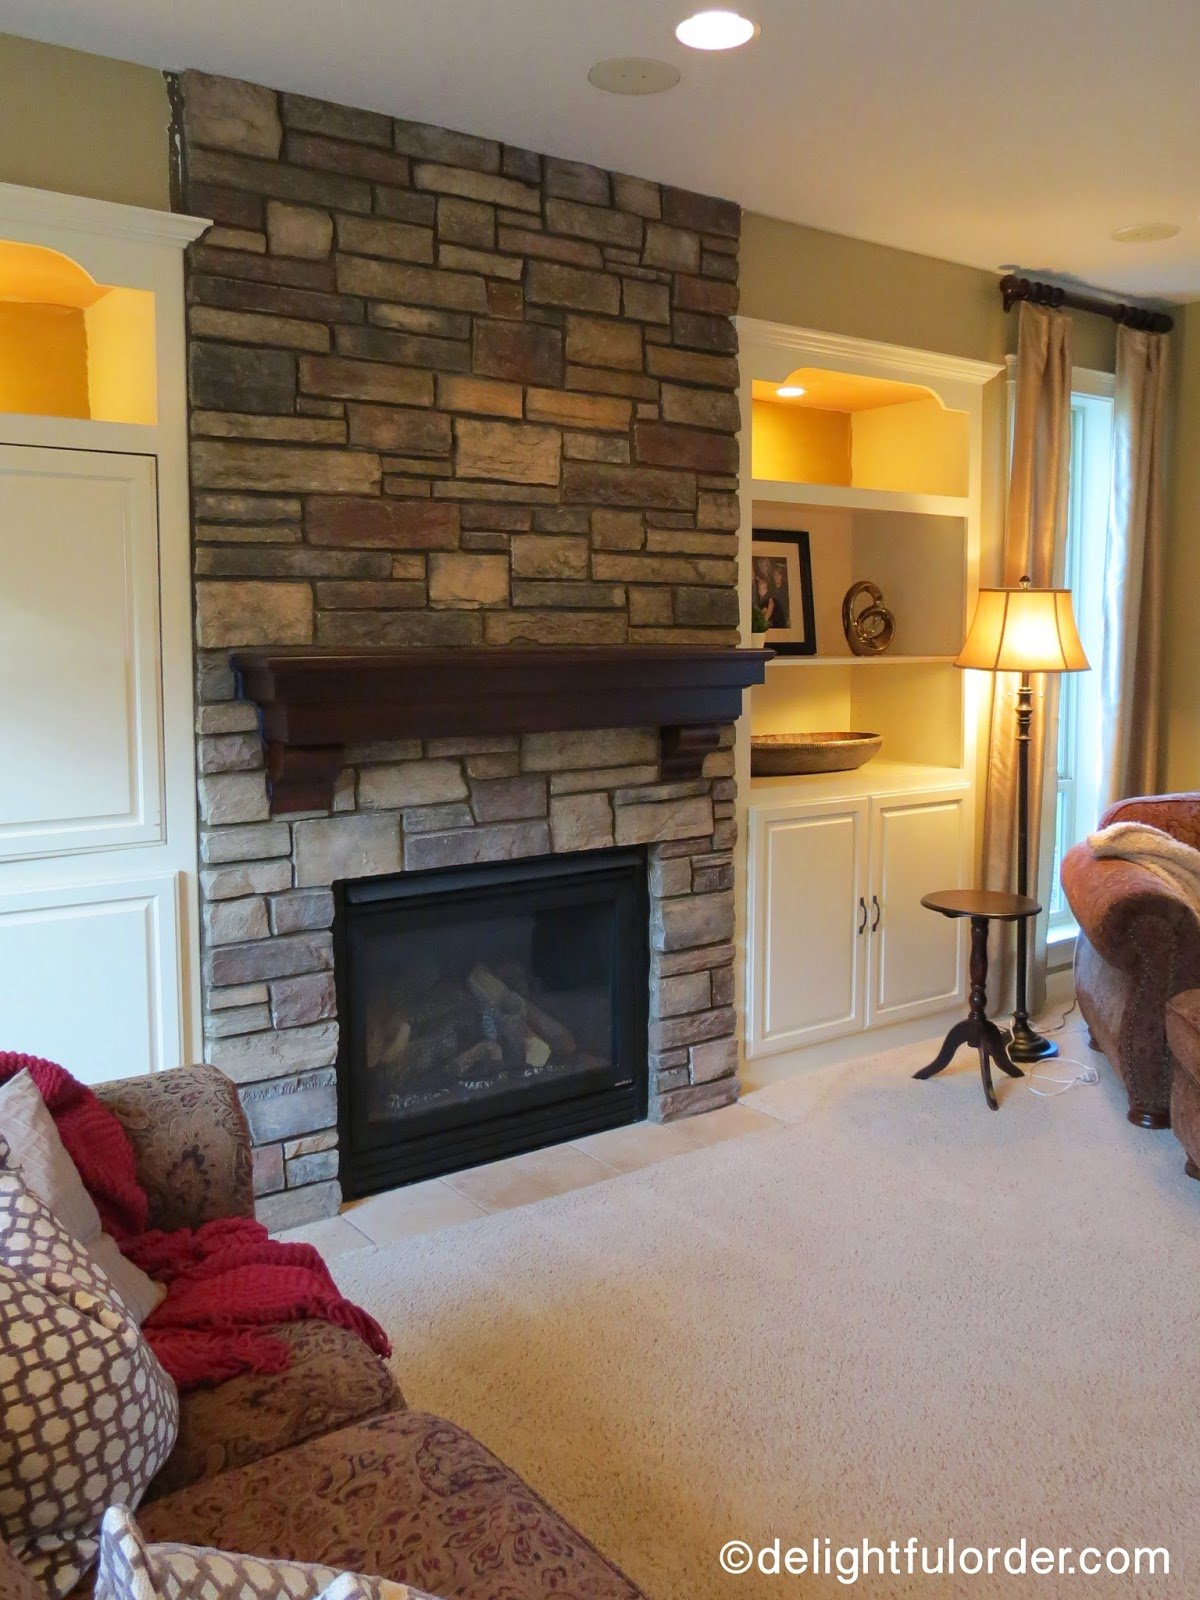 delightful order new fireplace and mantel